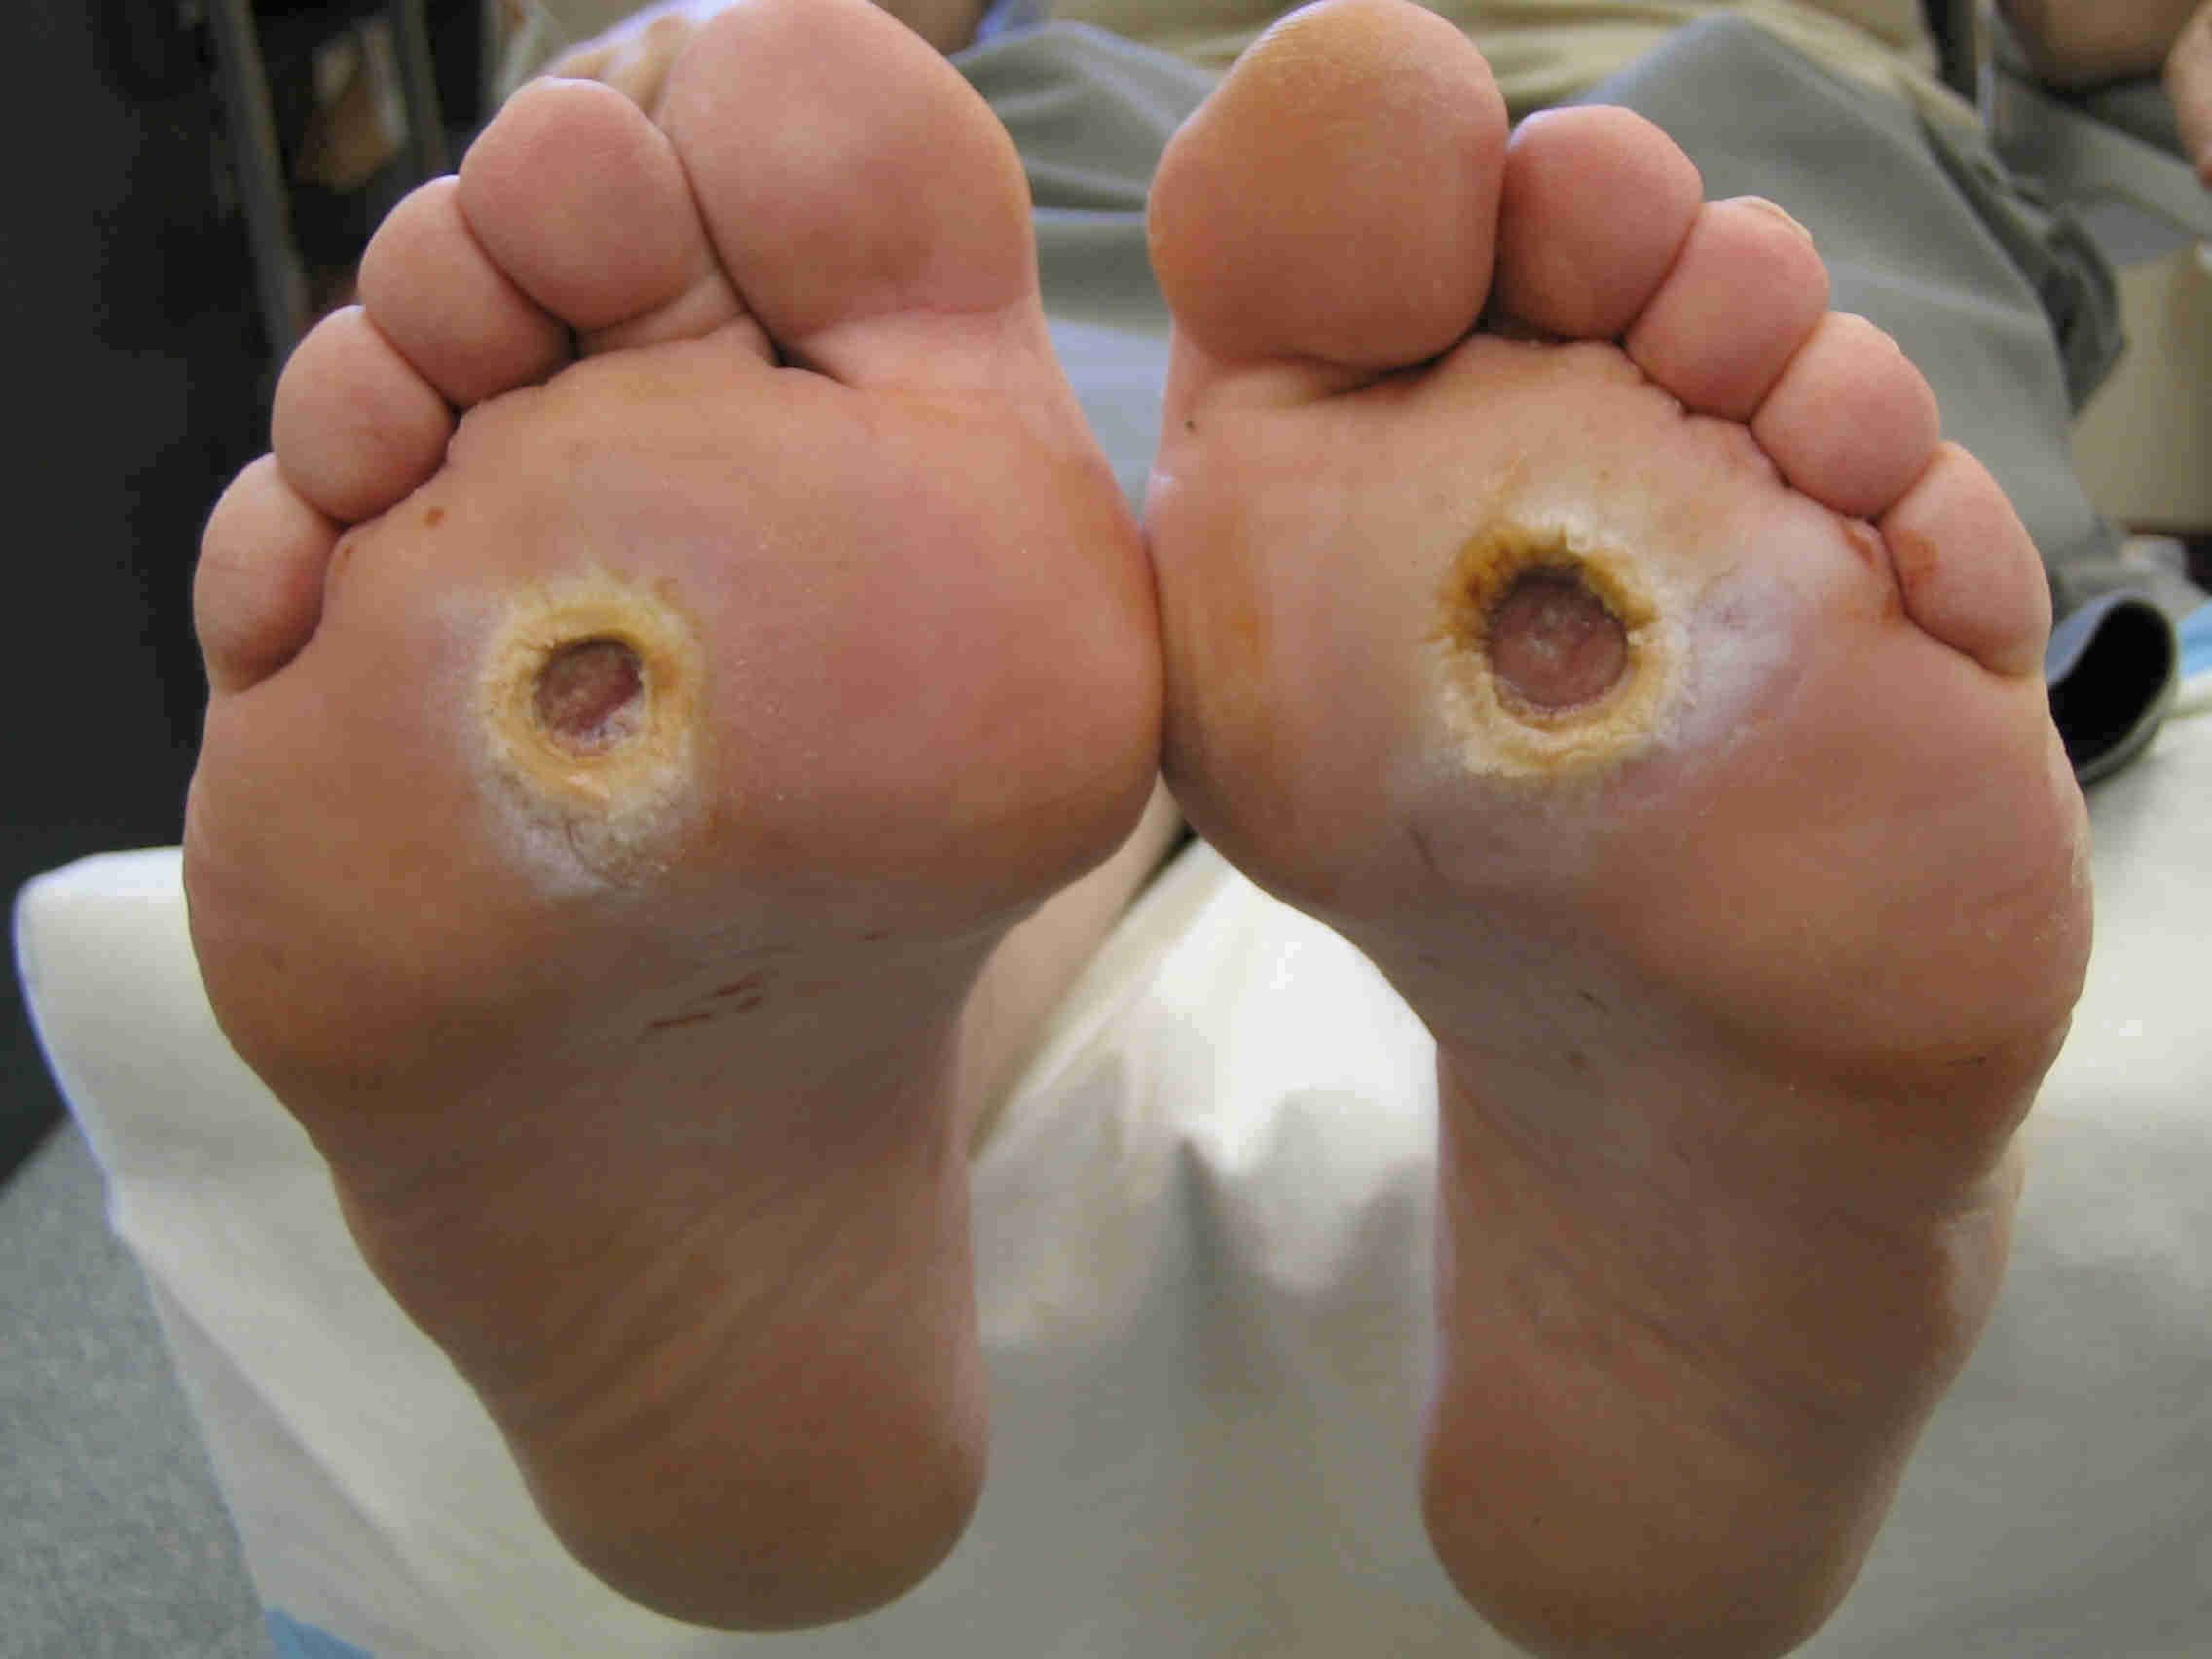 Diabetic foot ulcer treated by Houston podiatrist and wound specialist